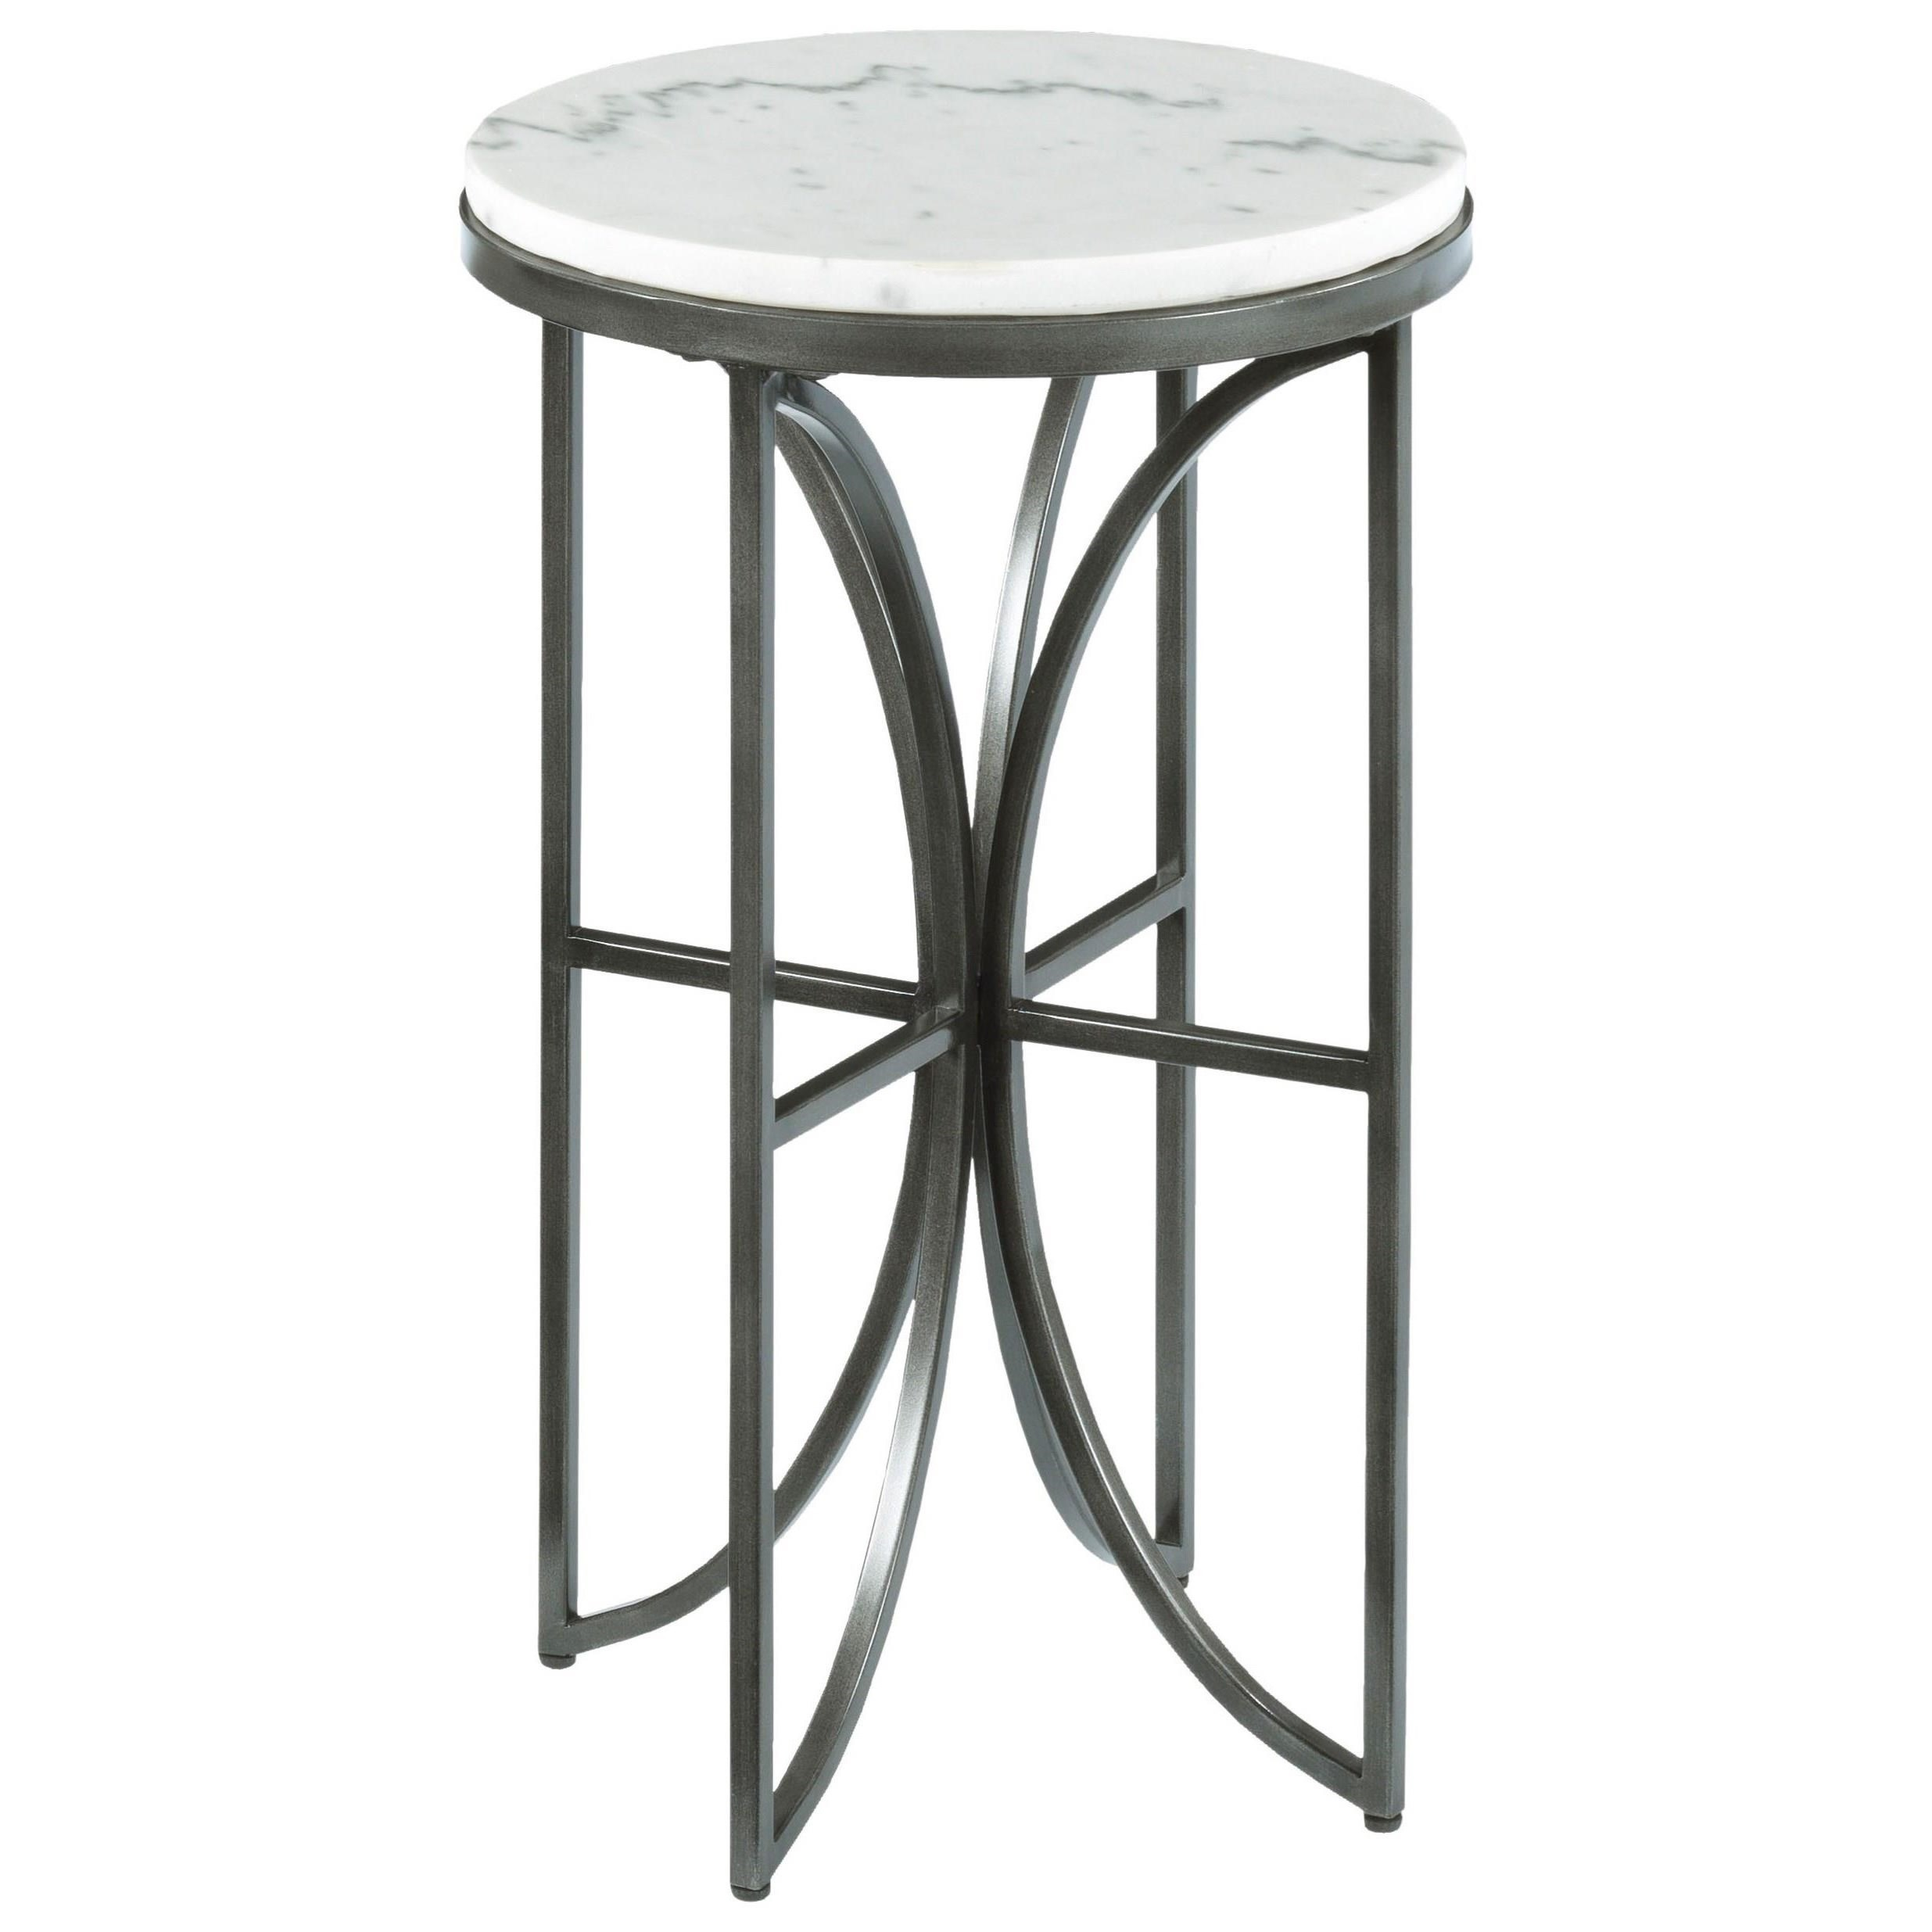 best small accent table with ideas about tables awesome round marble top hammary wolf and unique hammered copper side lampshade fittings black gold coffee bird decorations for